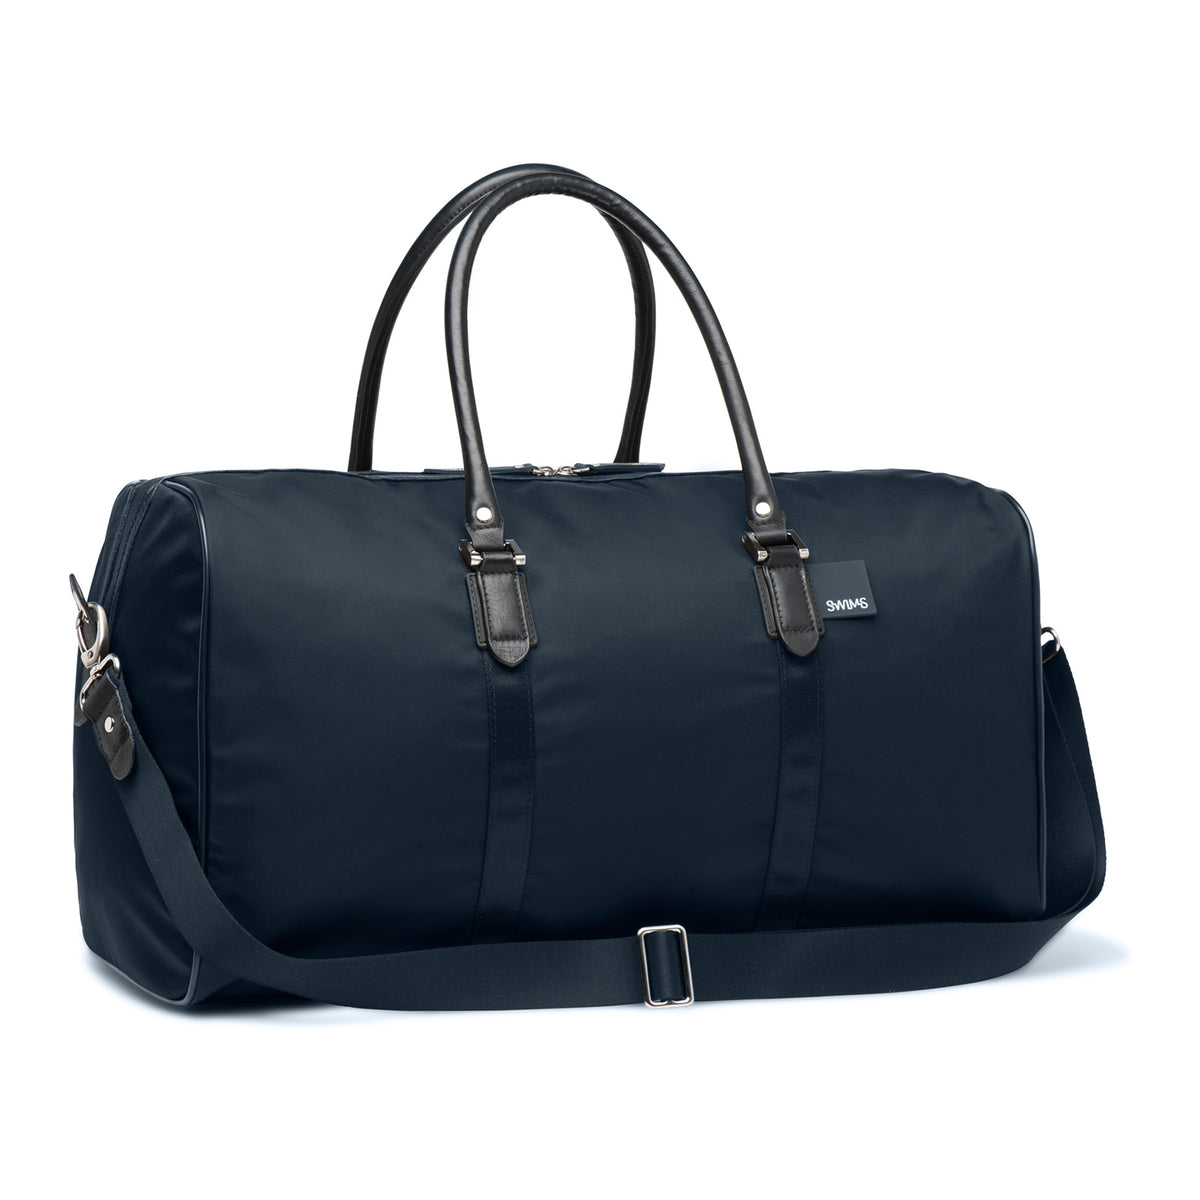 Boston Duffel Bag - background::white,variant::Navy